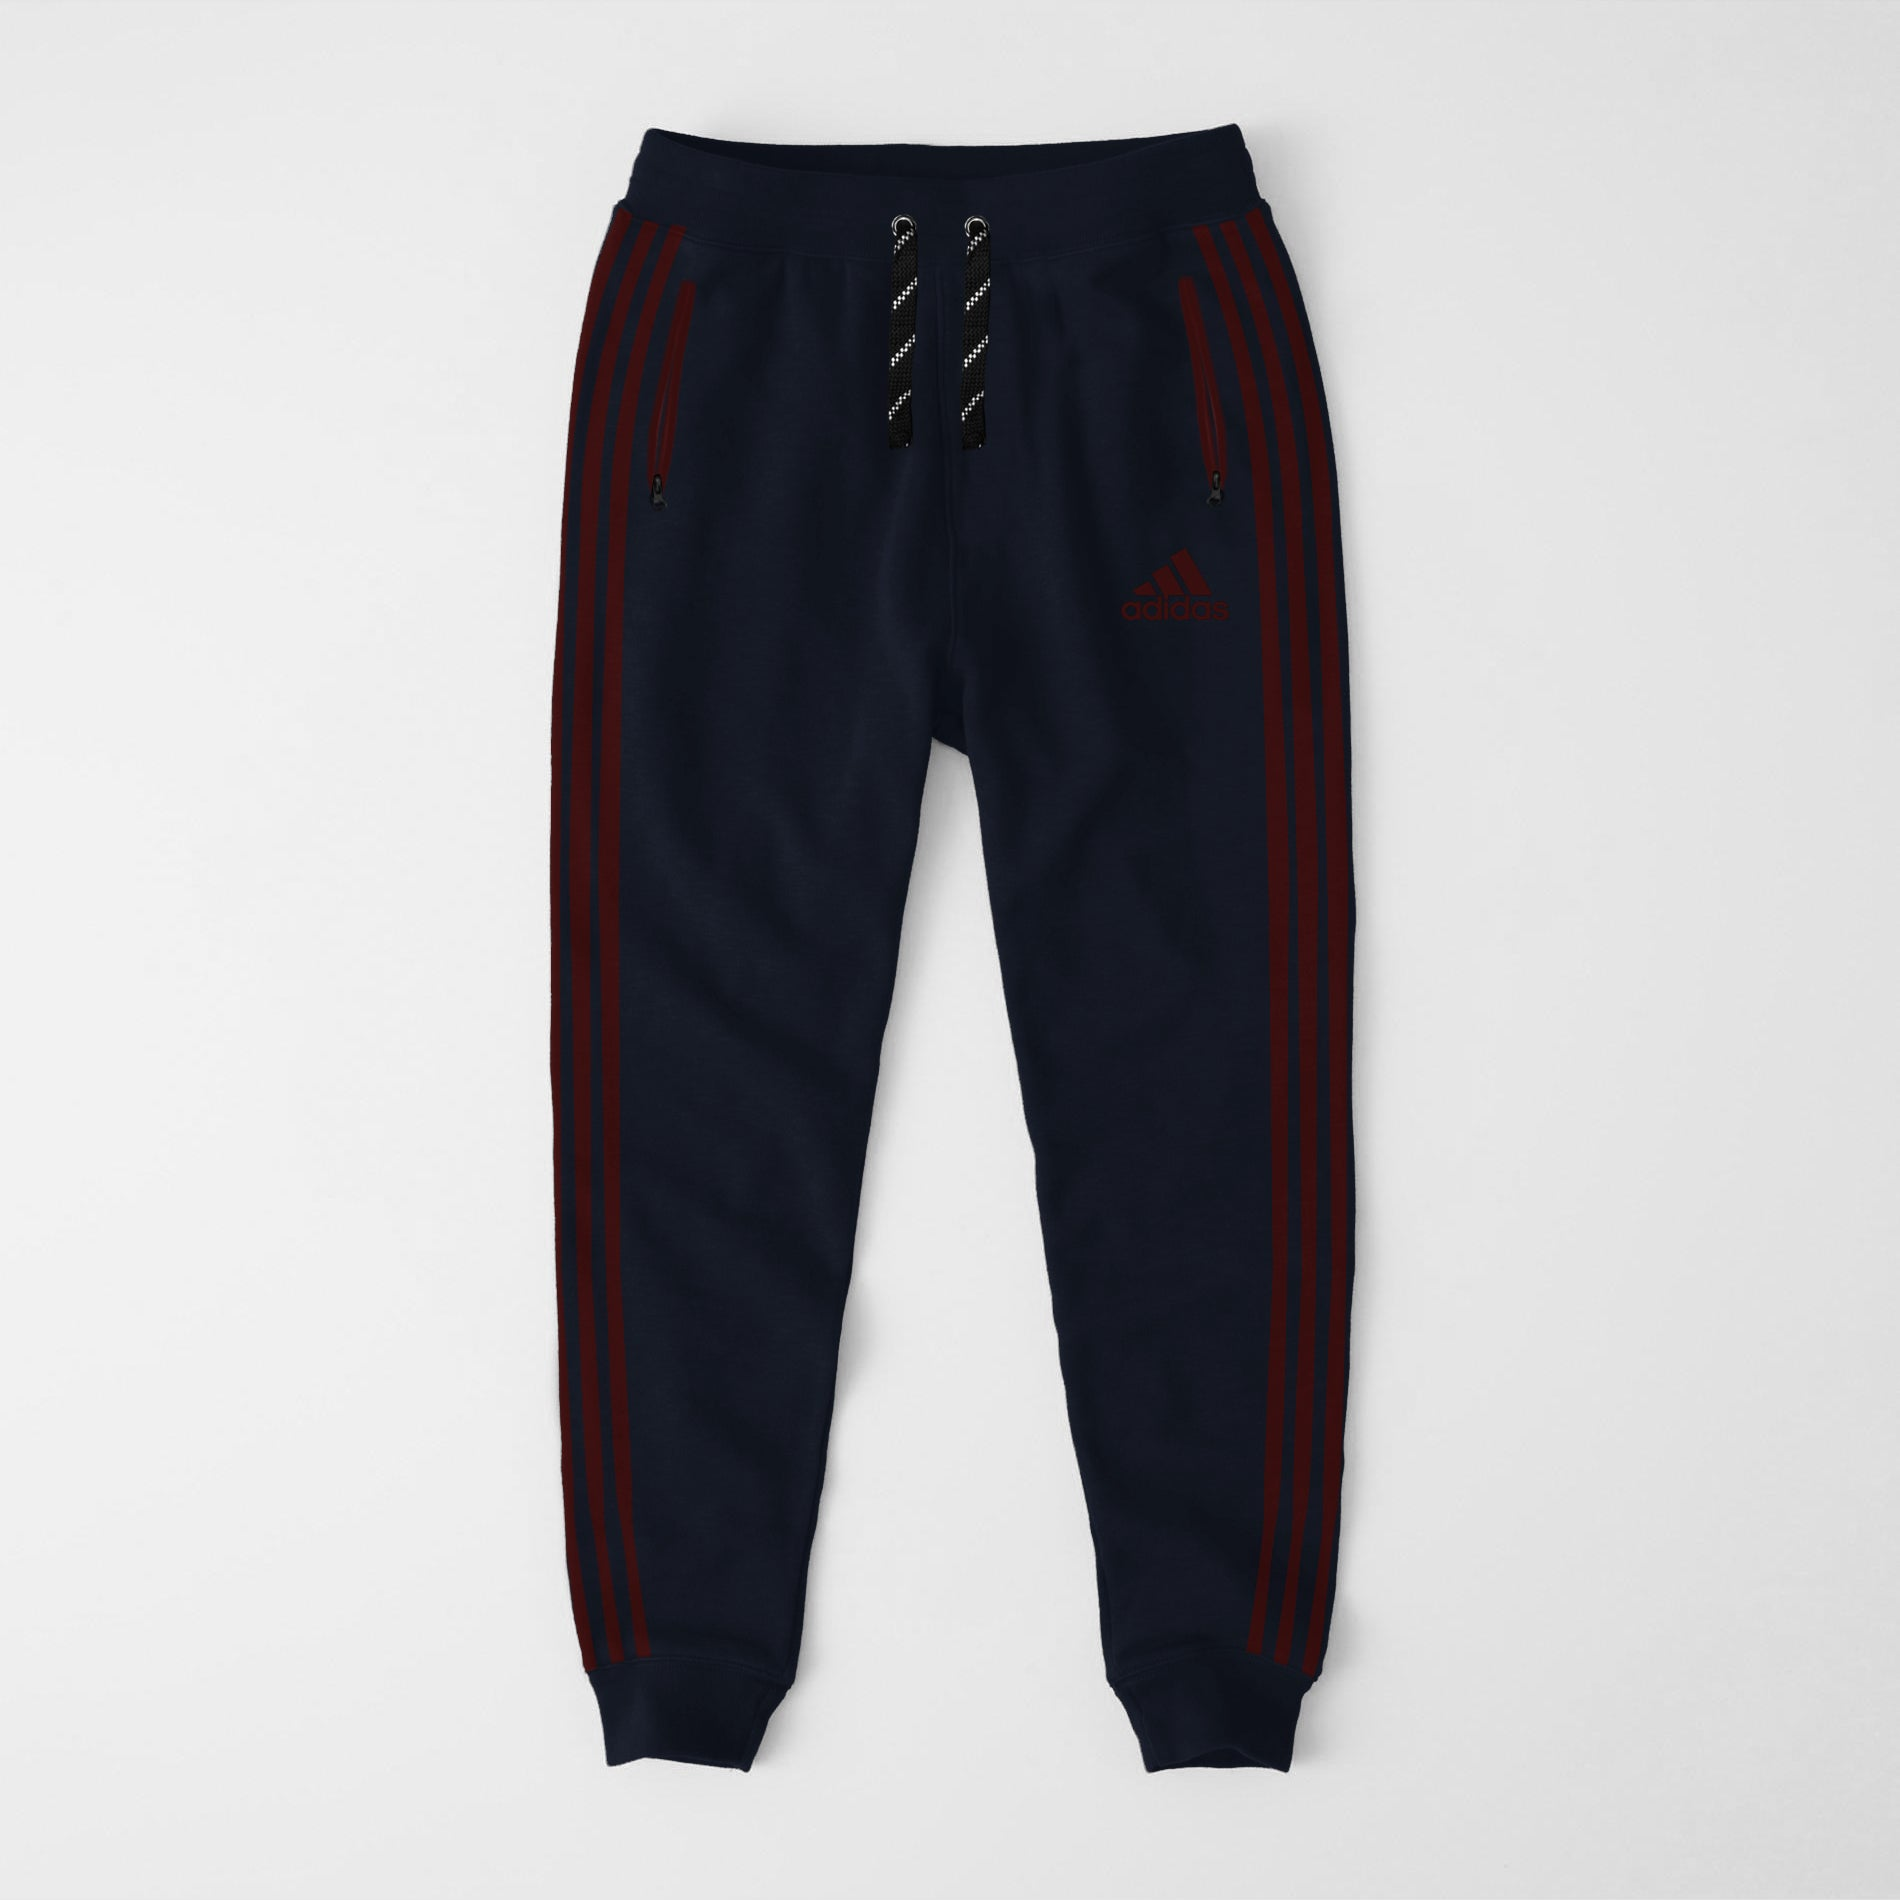 Adidas Single Jersey Slim Fit Jogger Trouser For Men-Dark Navy With Burgundy Stripes-NA8251